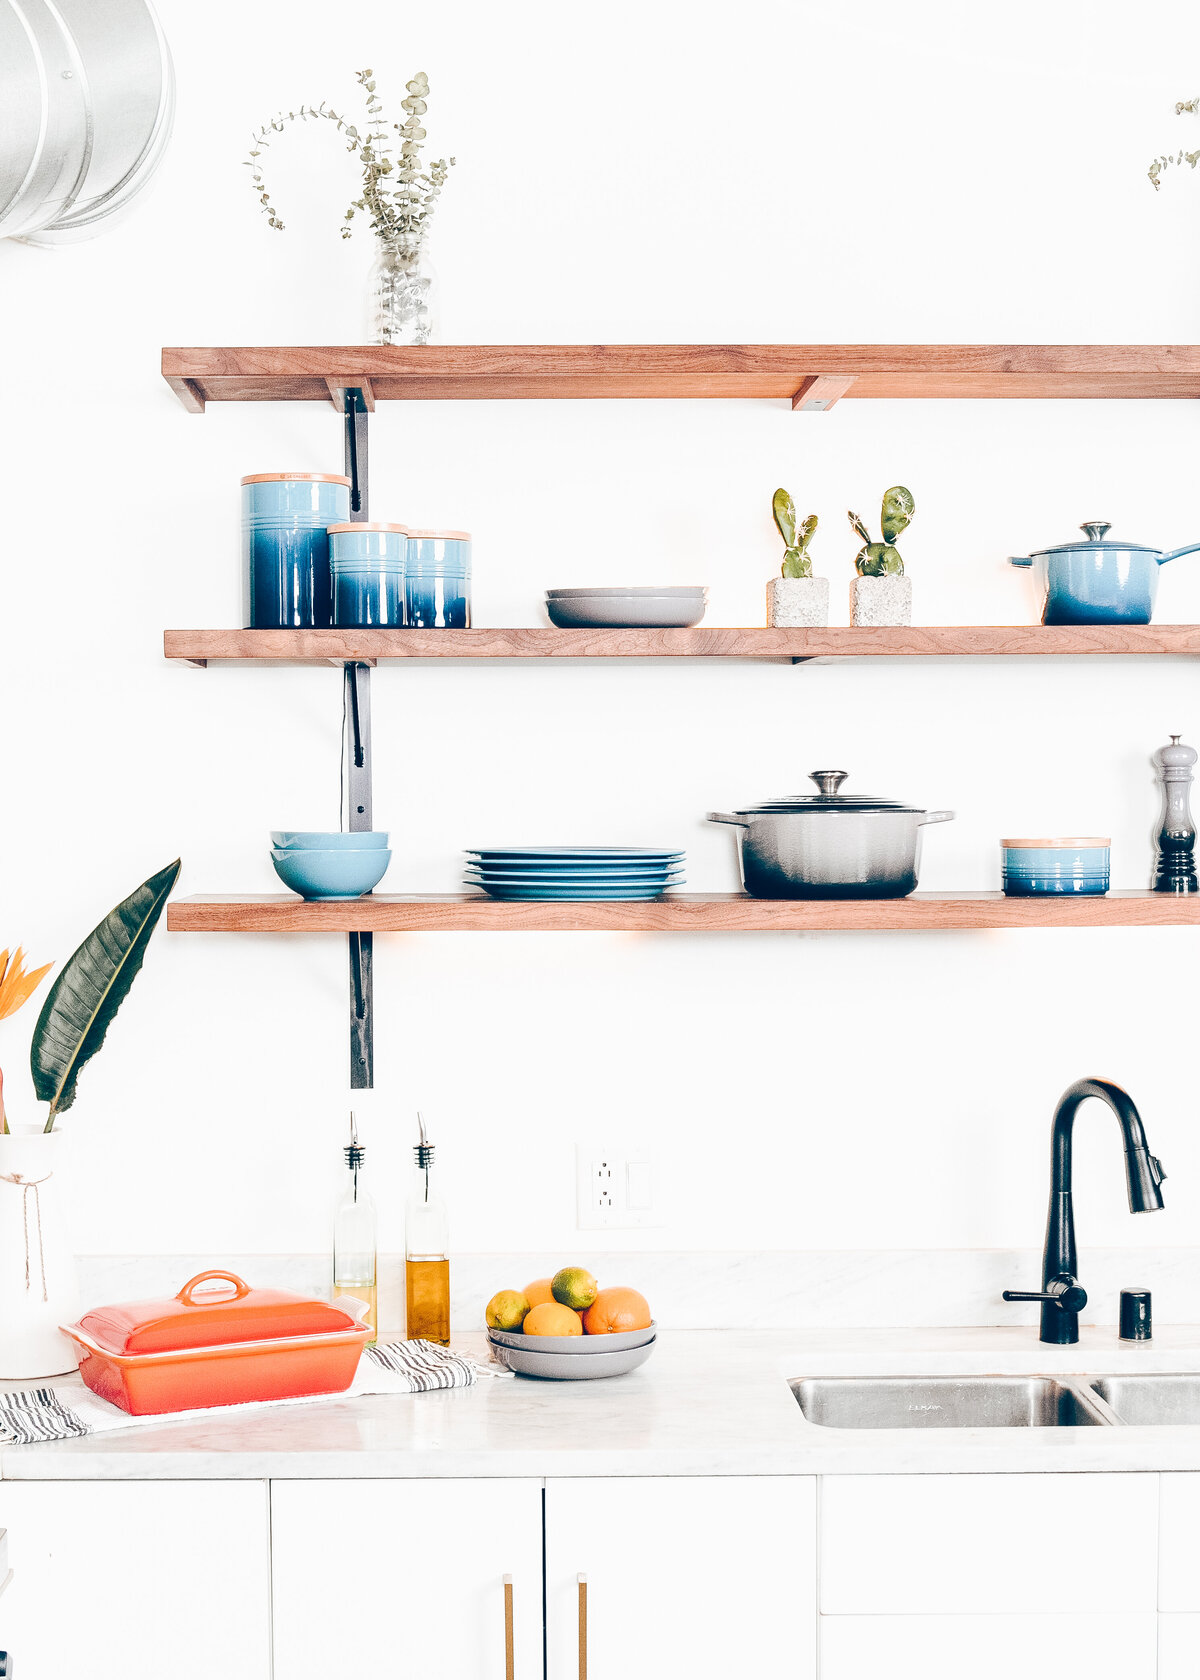 A white kitchen is accented with wooden shelves filled with blue ceramic pots and an orange casserole dish.